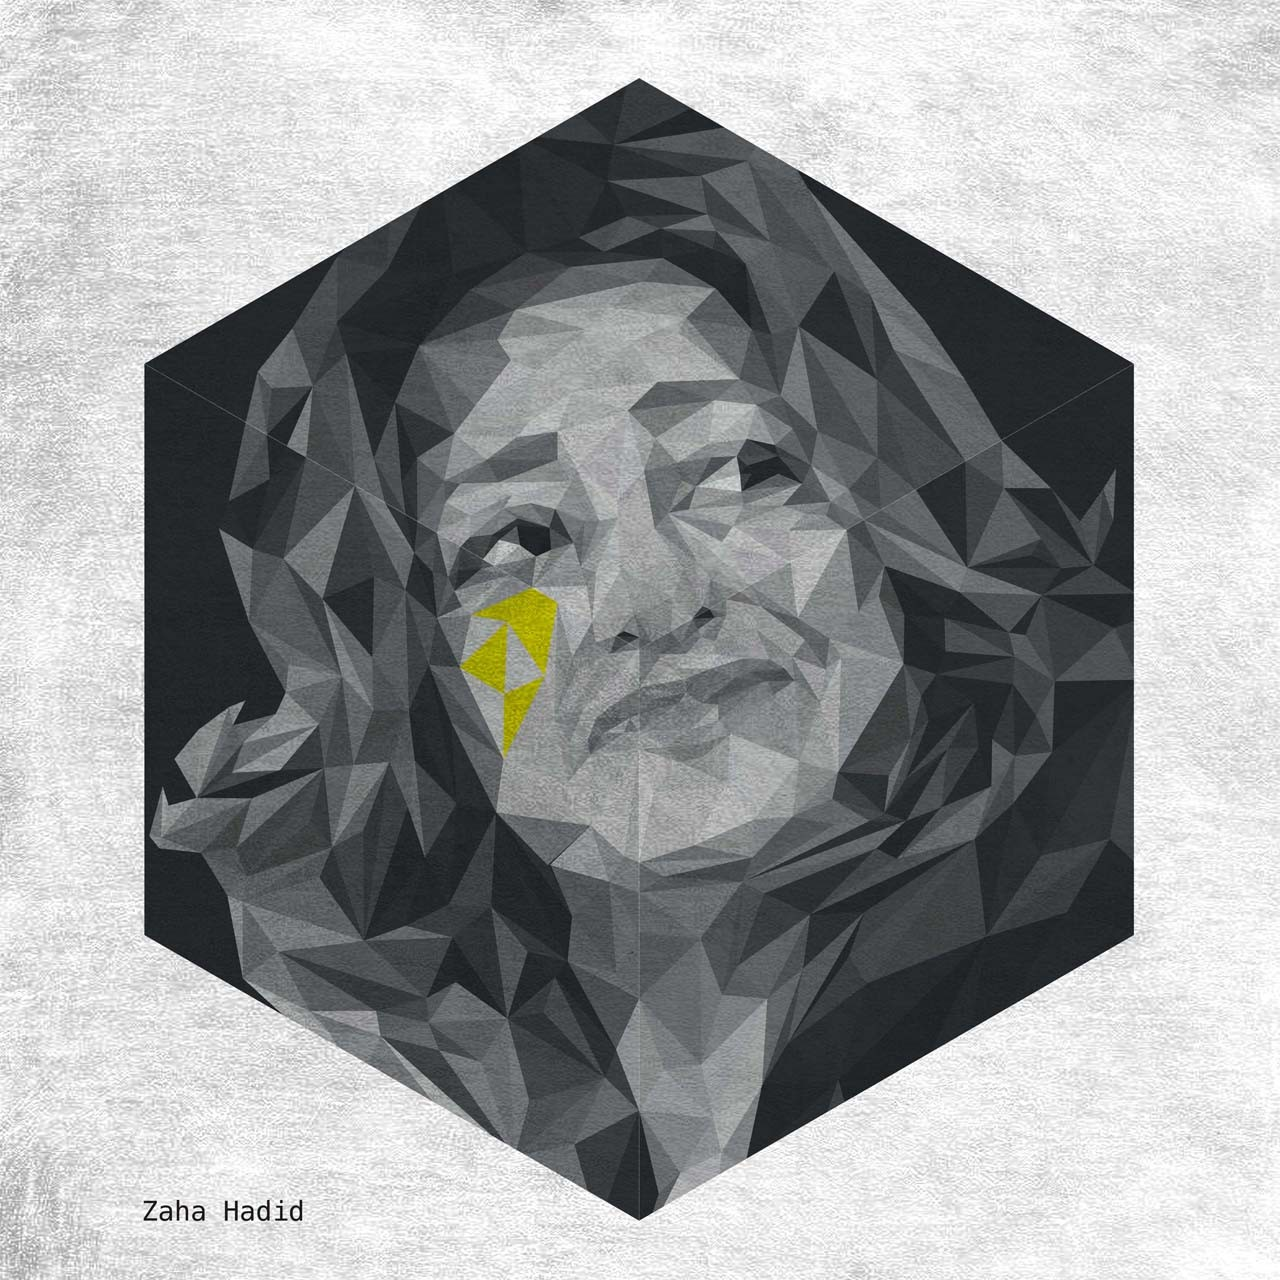 ZAHA HADID. Image Courtesy of Yannick Martin